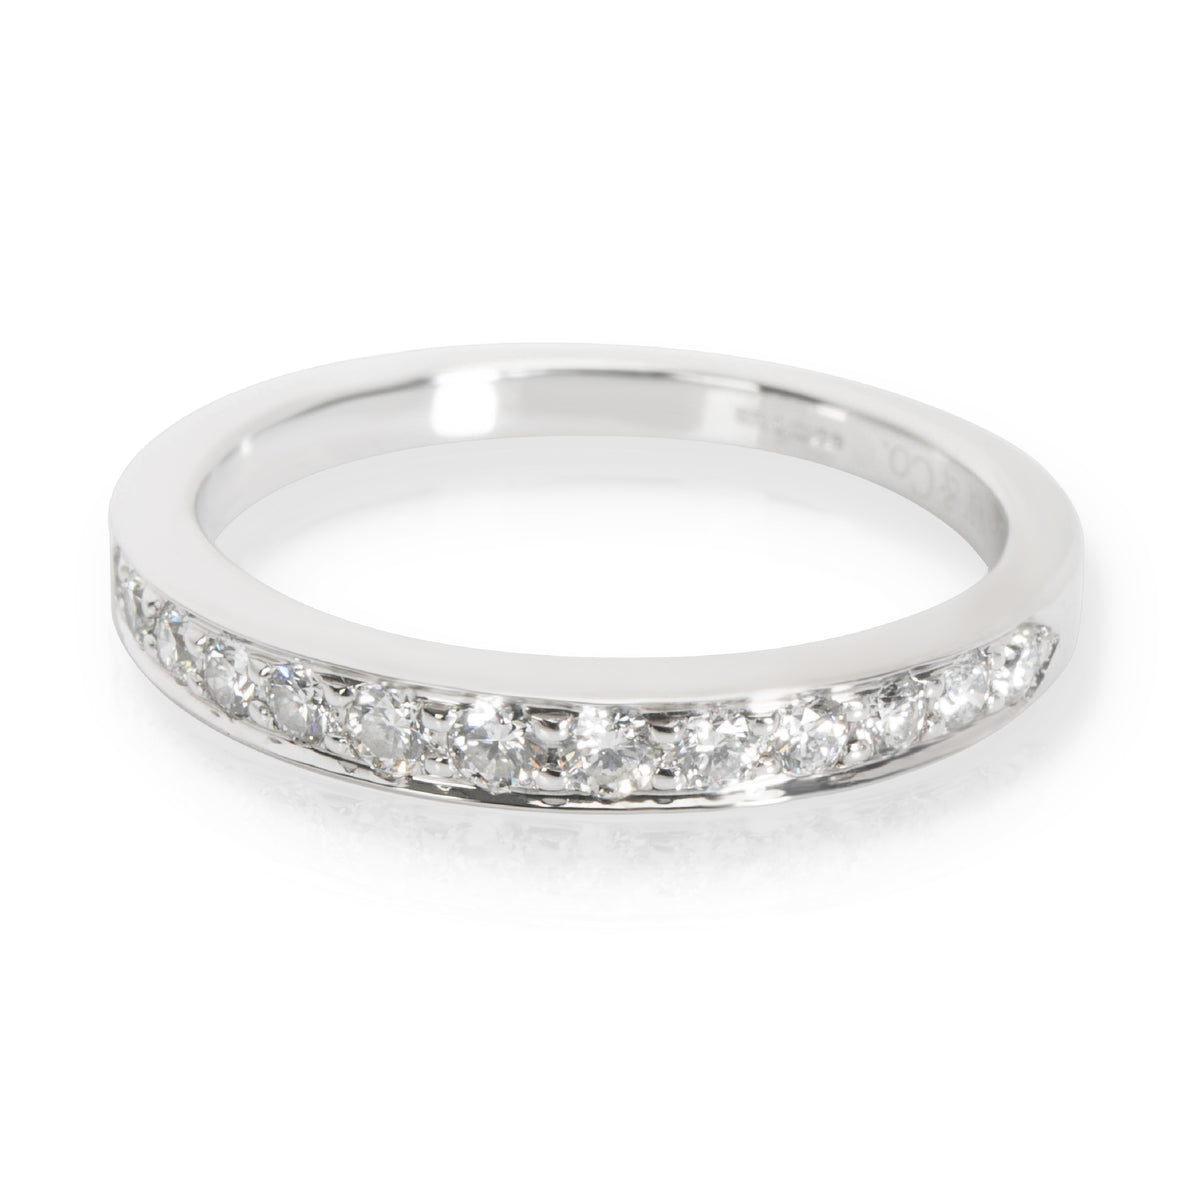 Tiffany & Co. Channel Set Diamond Band in Platinum 0.24 CTW